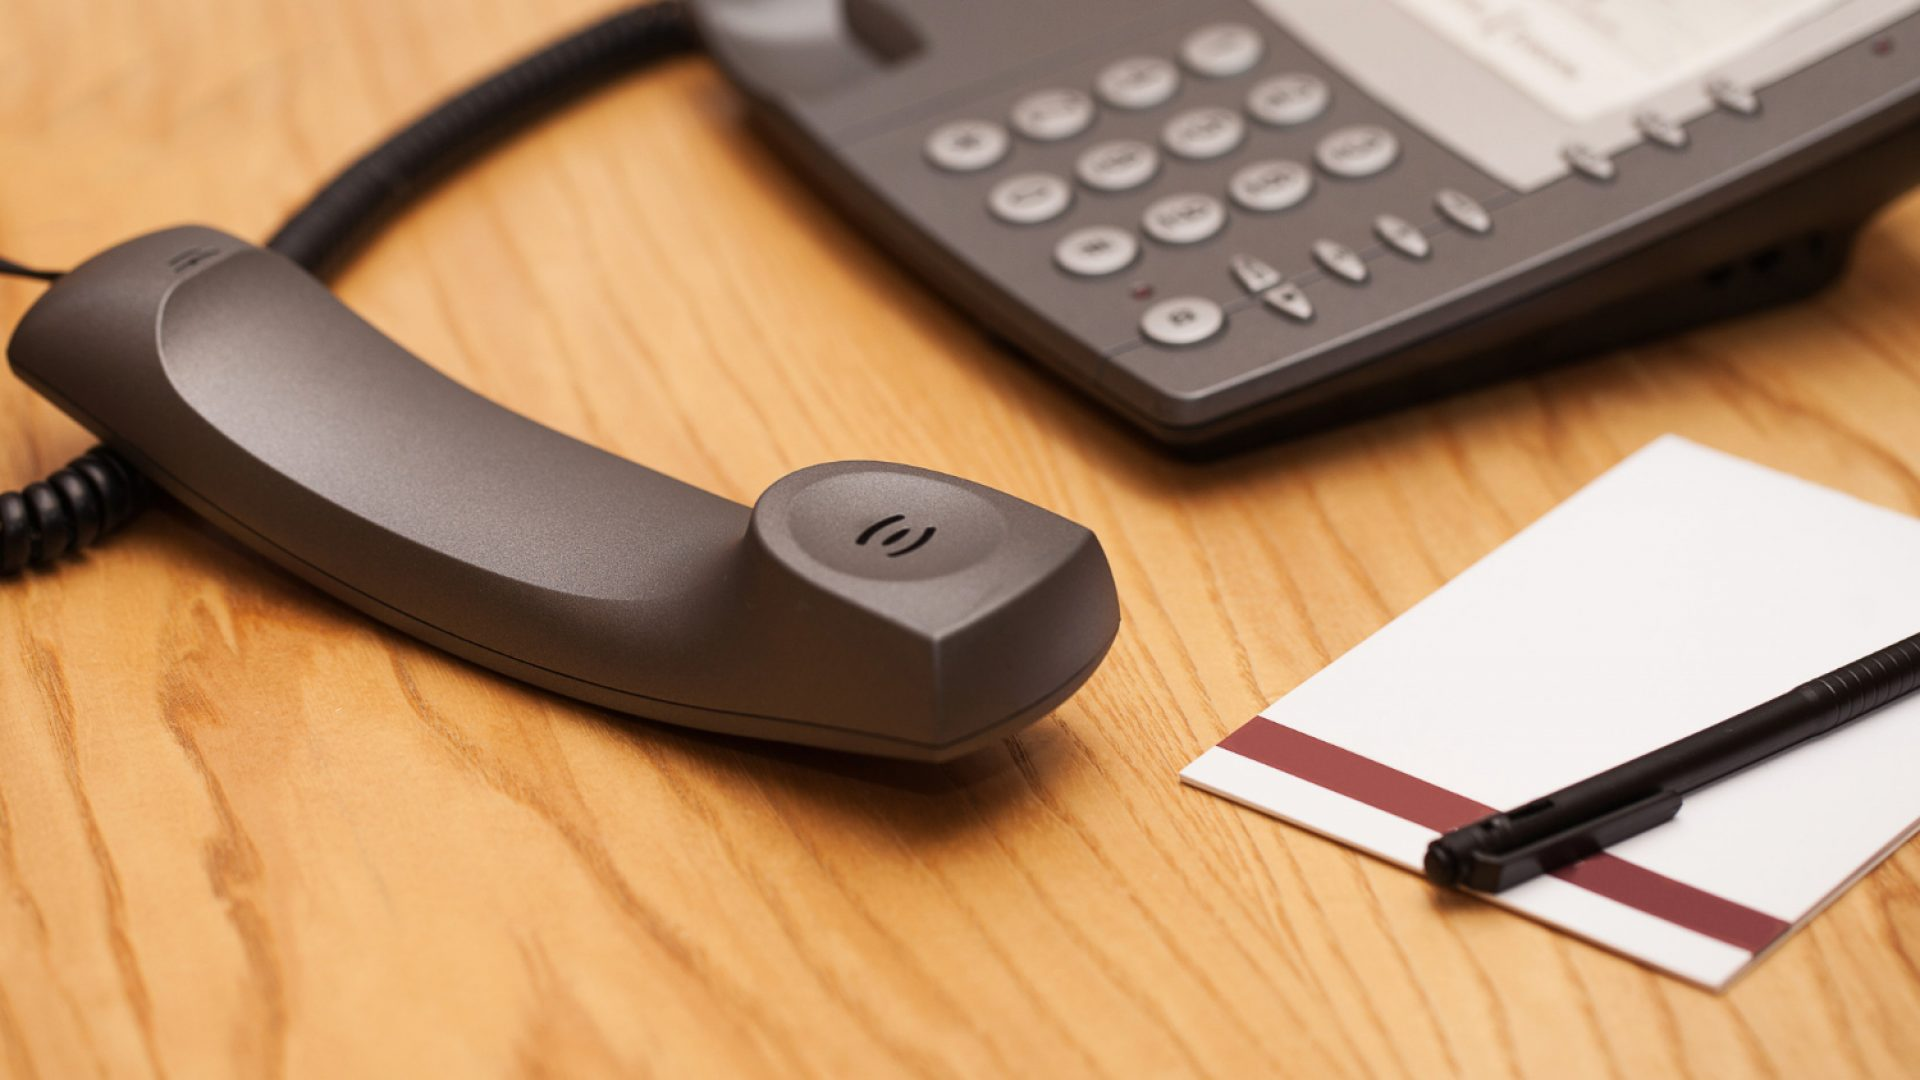 Close up of office desk phone with handset off-hook. Benefits of direct inward dialing